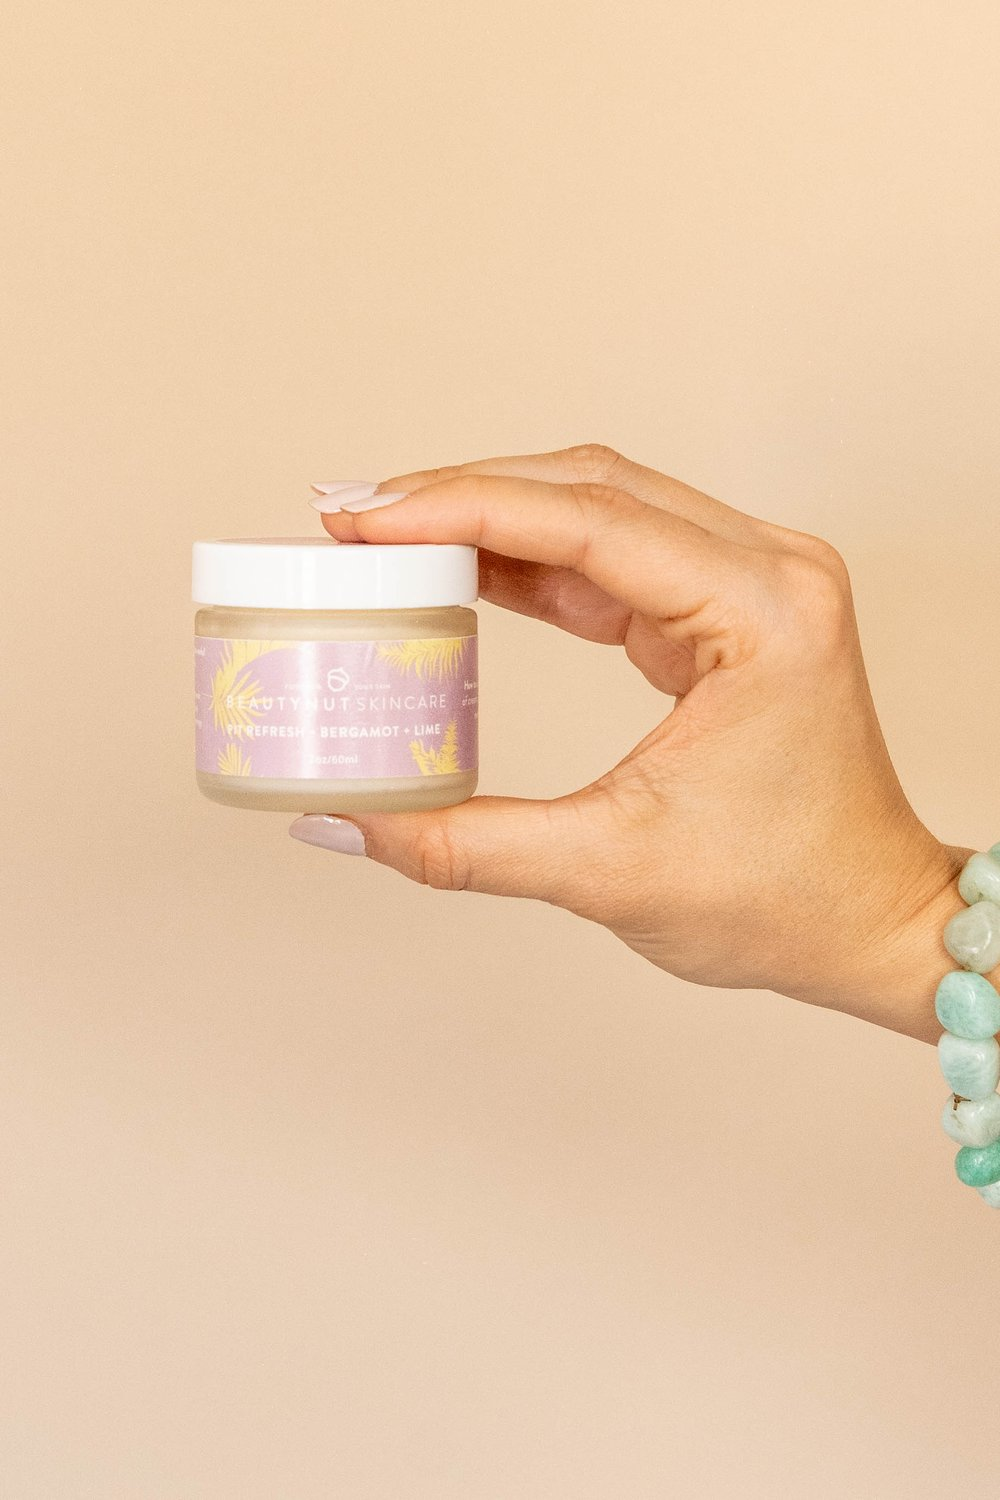 A hand holding up a pot of Healthnut Natural Deodorant against a peach background